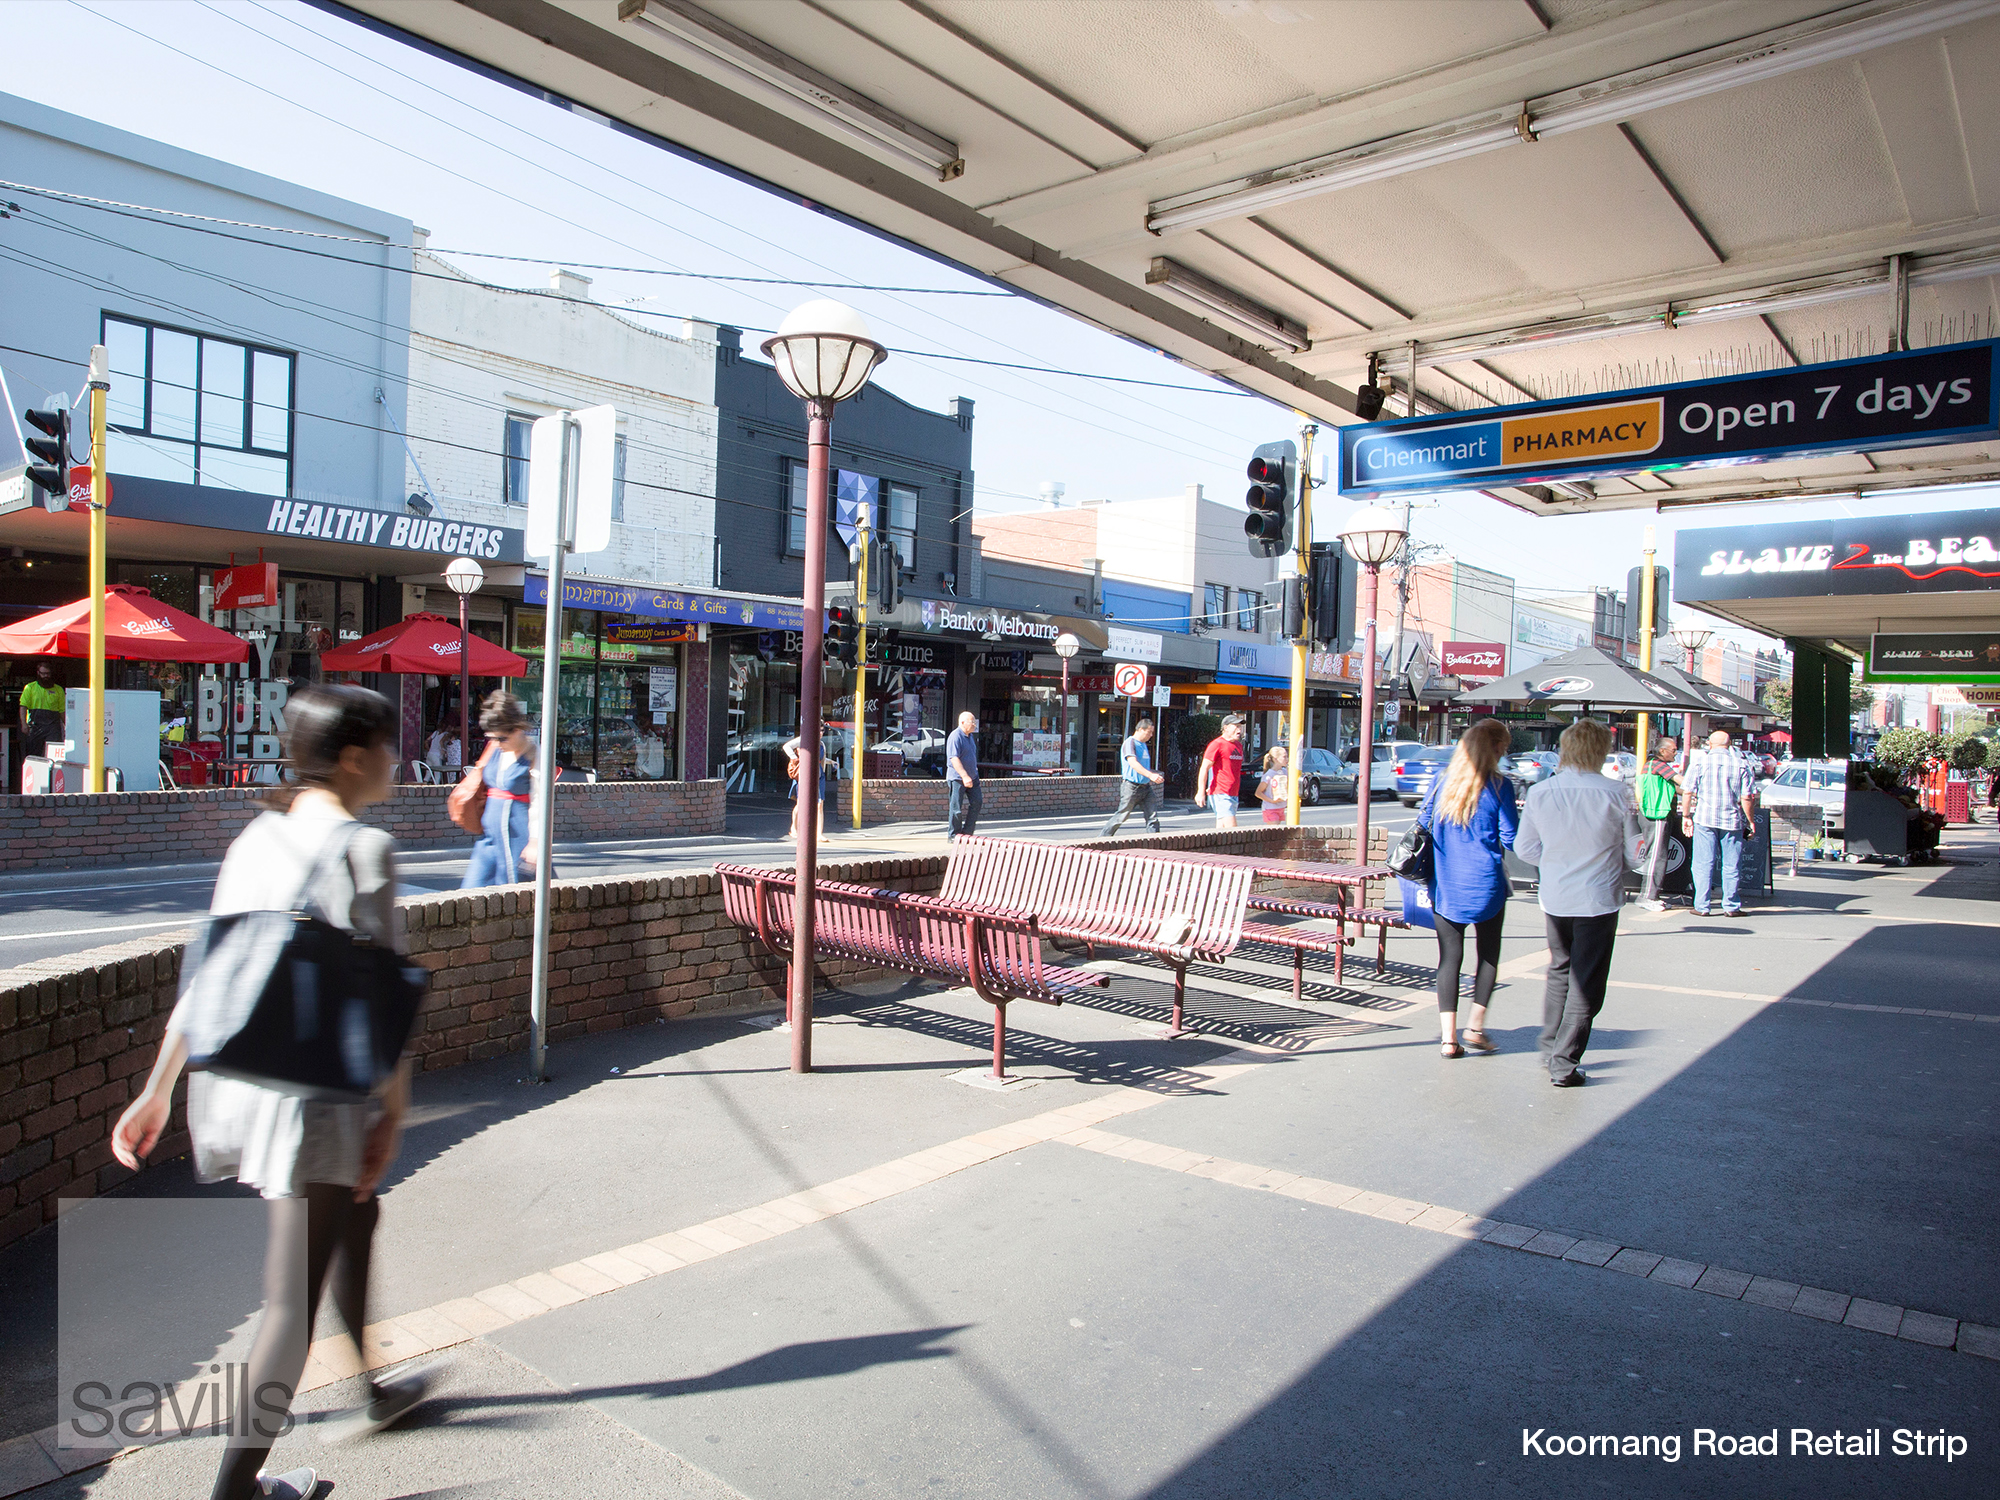 8 - Koornang Road Retail Strip.jpg